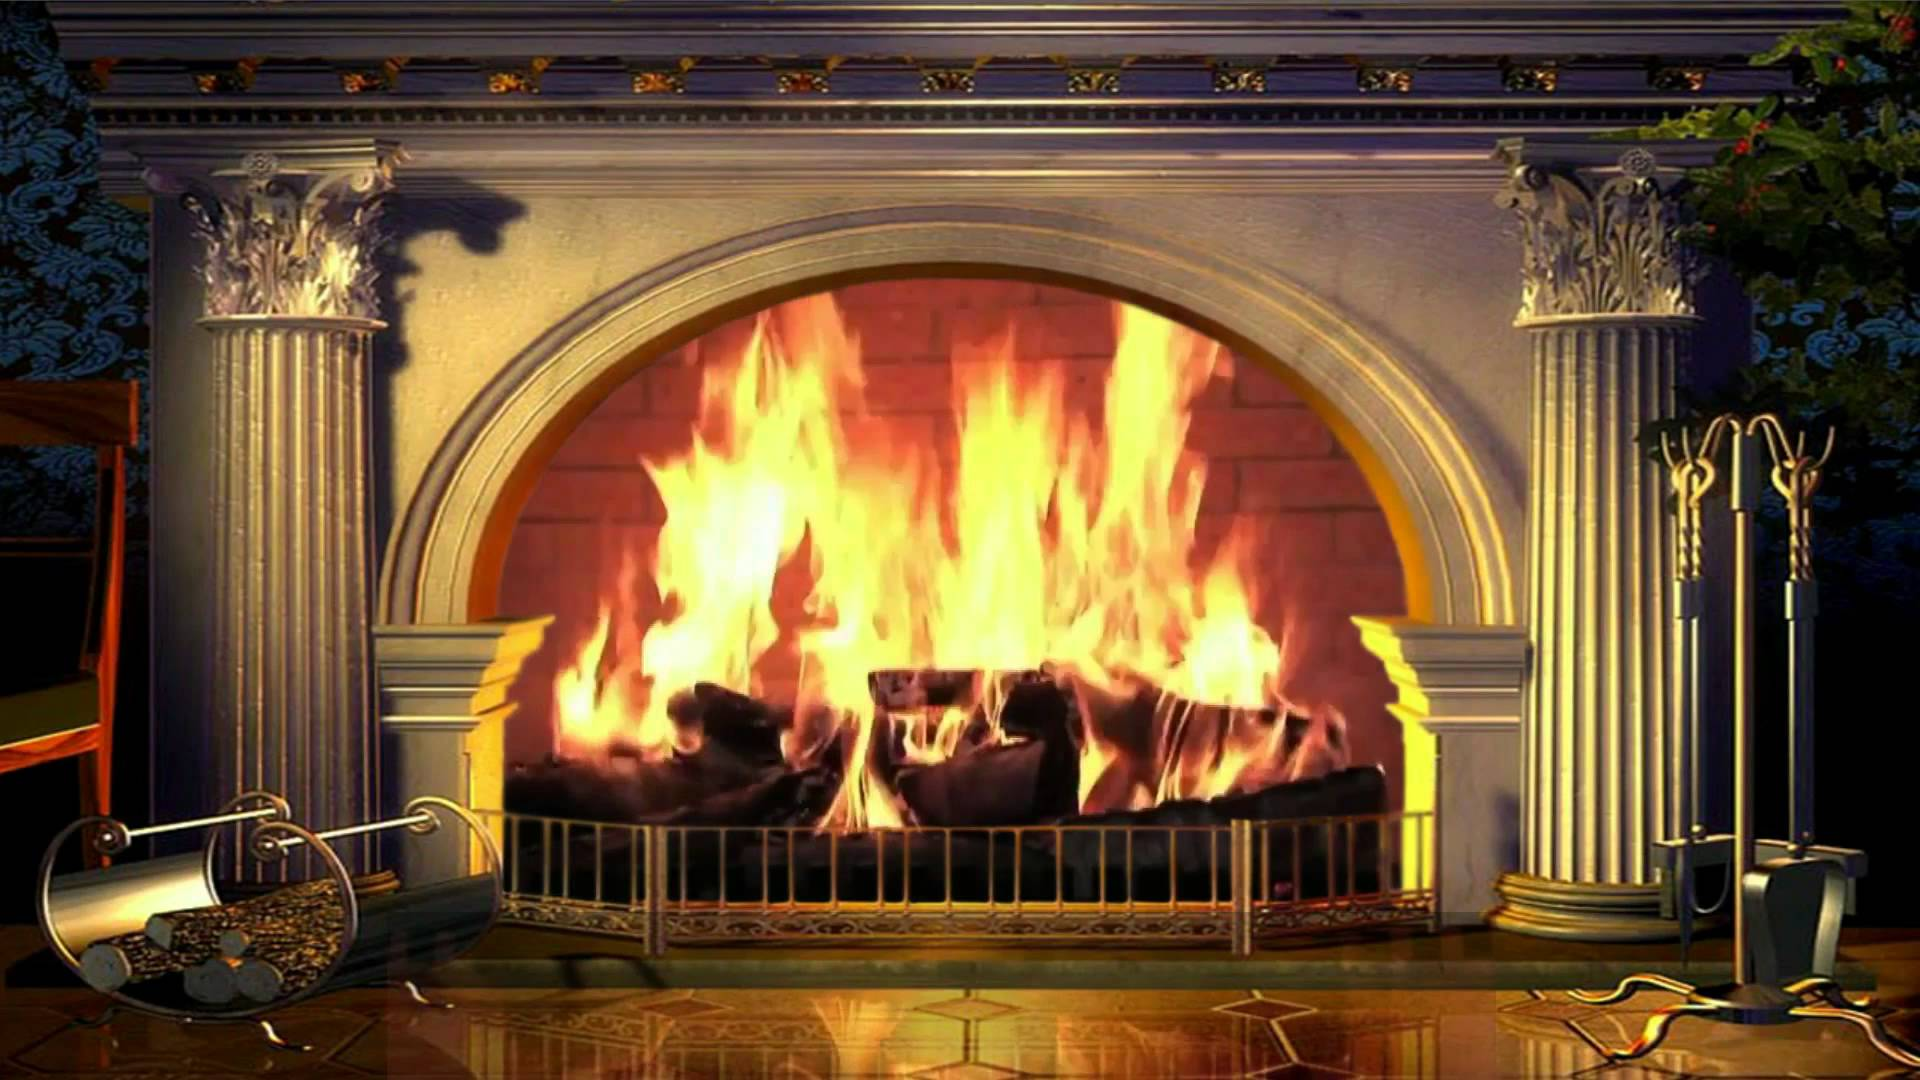 for christmas fireplace backdrops displaying 13 images for christmas 1920x1080